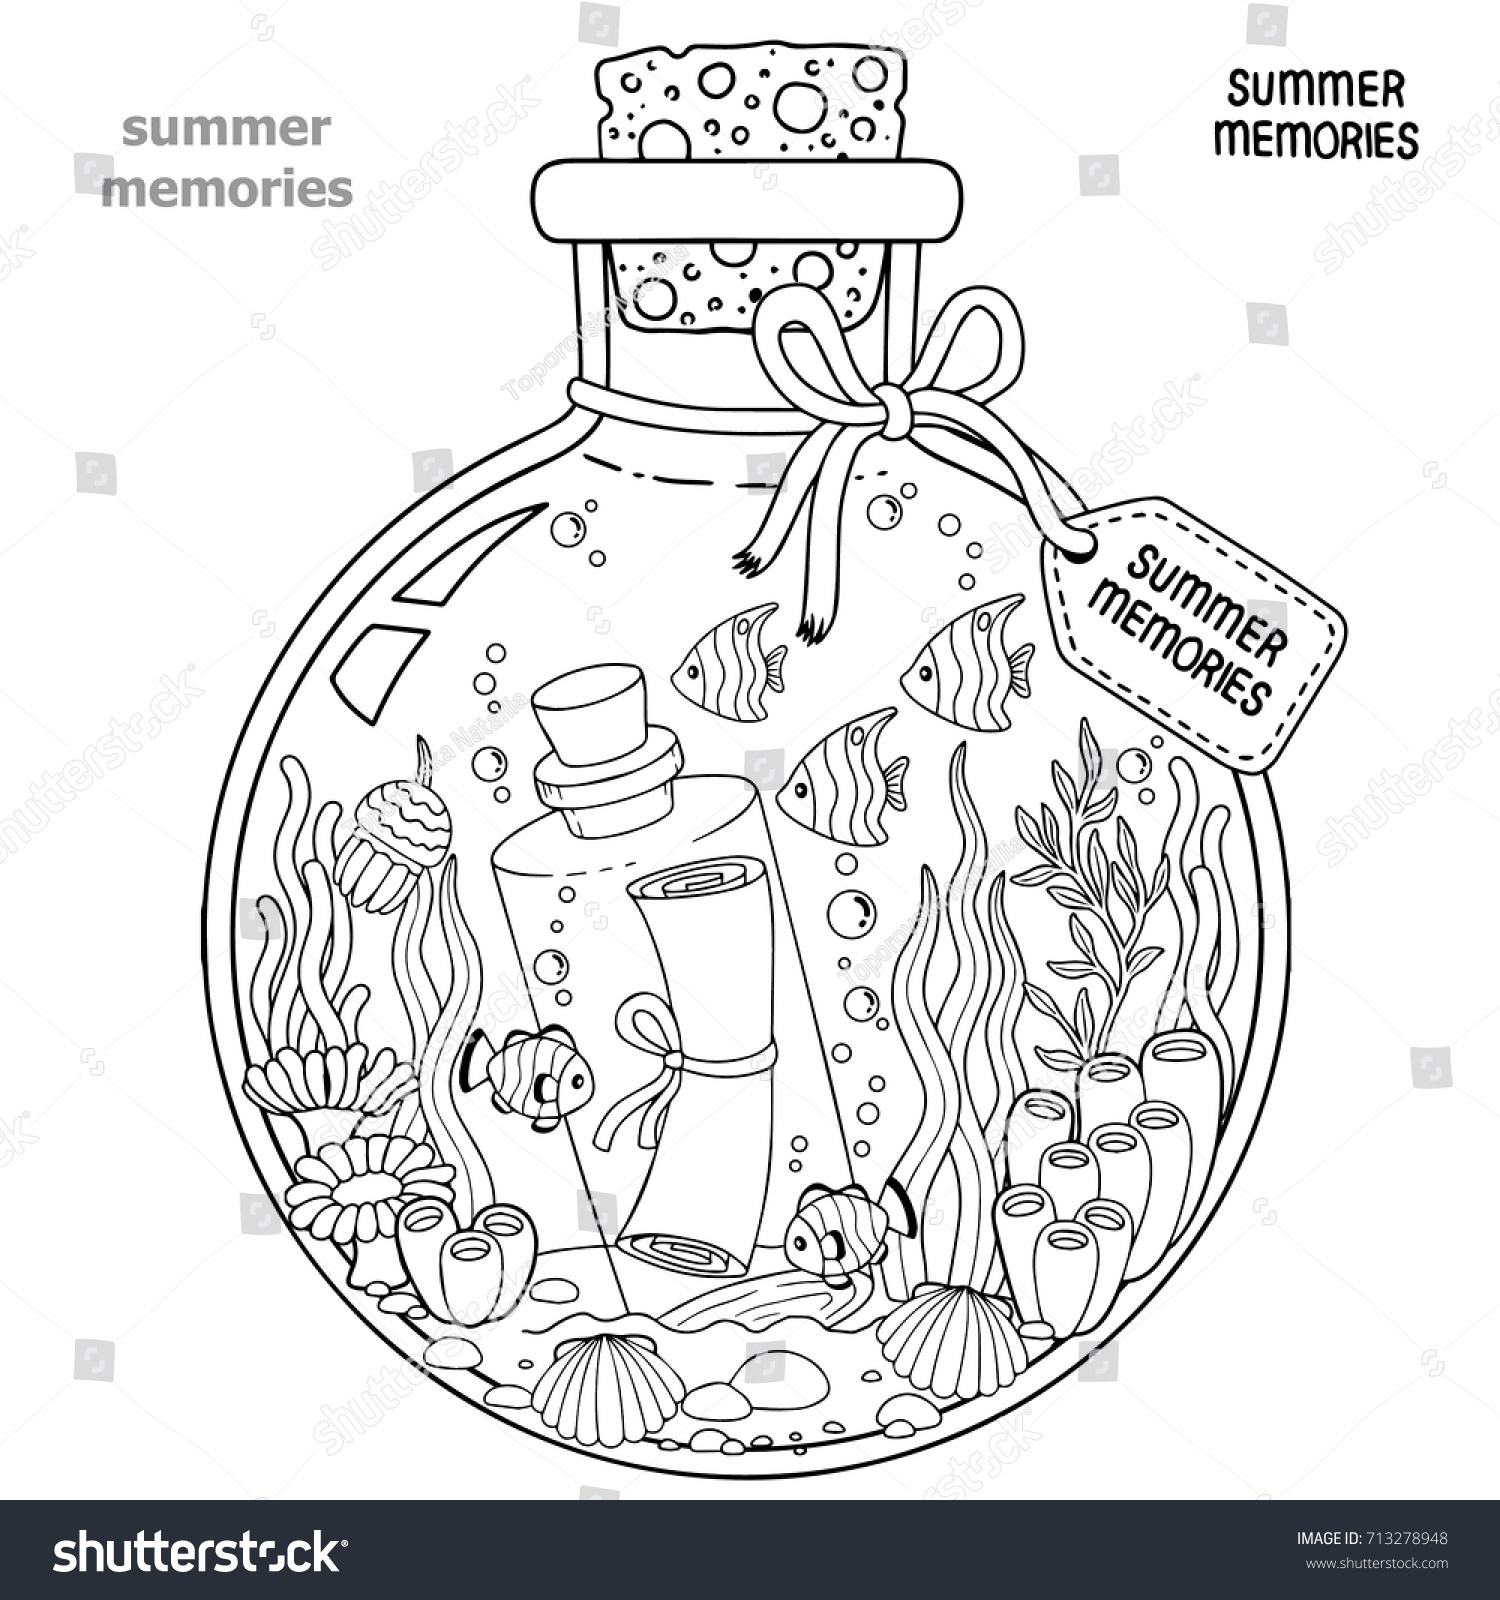 Vector Coloring Book For Adults A Glass Vessel With Memories Of Summer Bottle